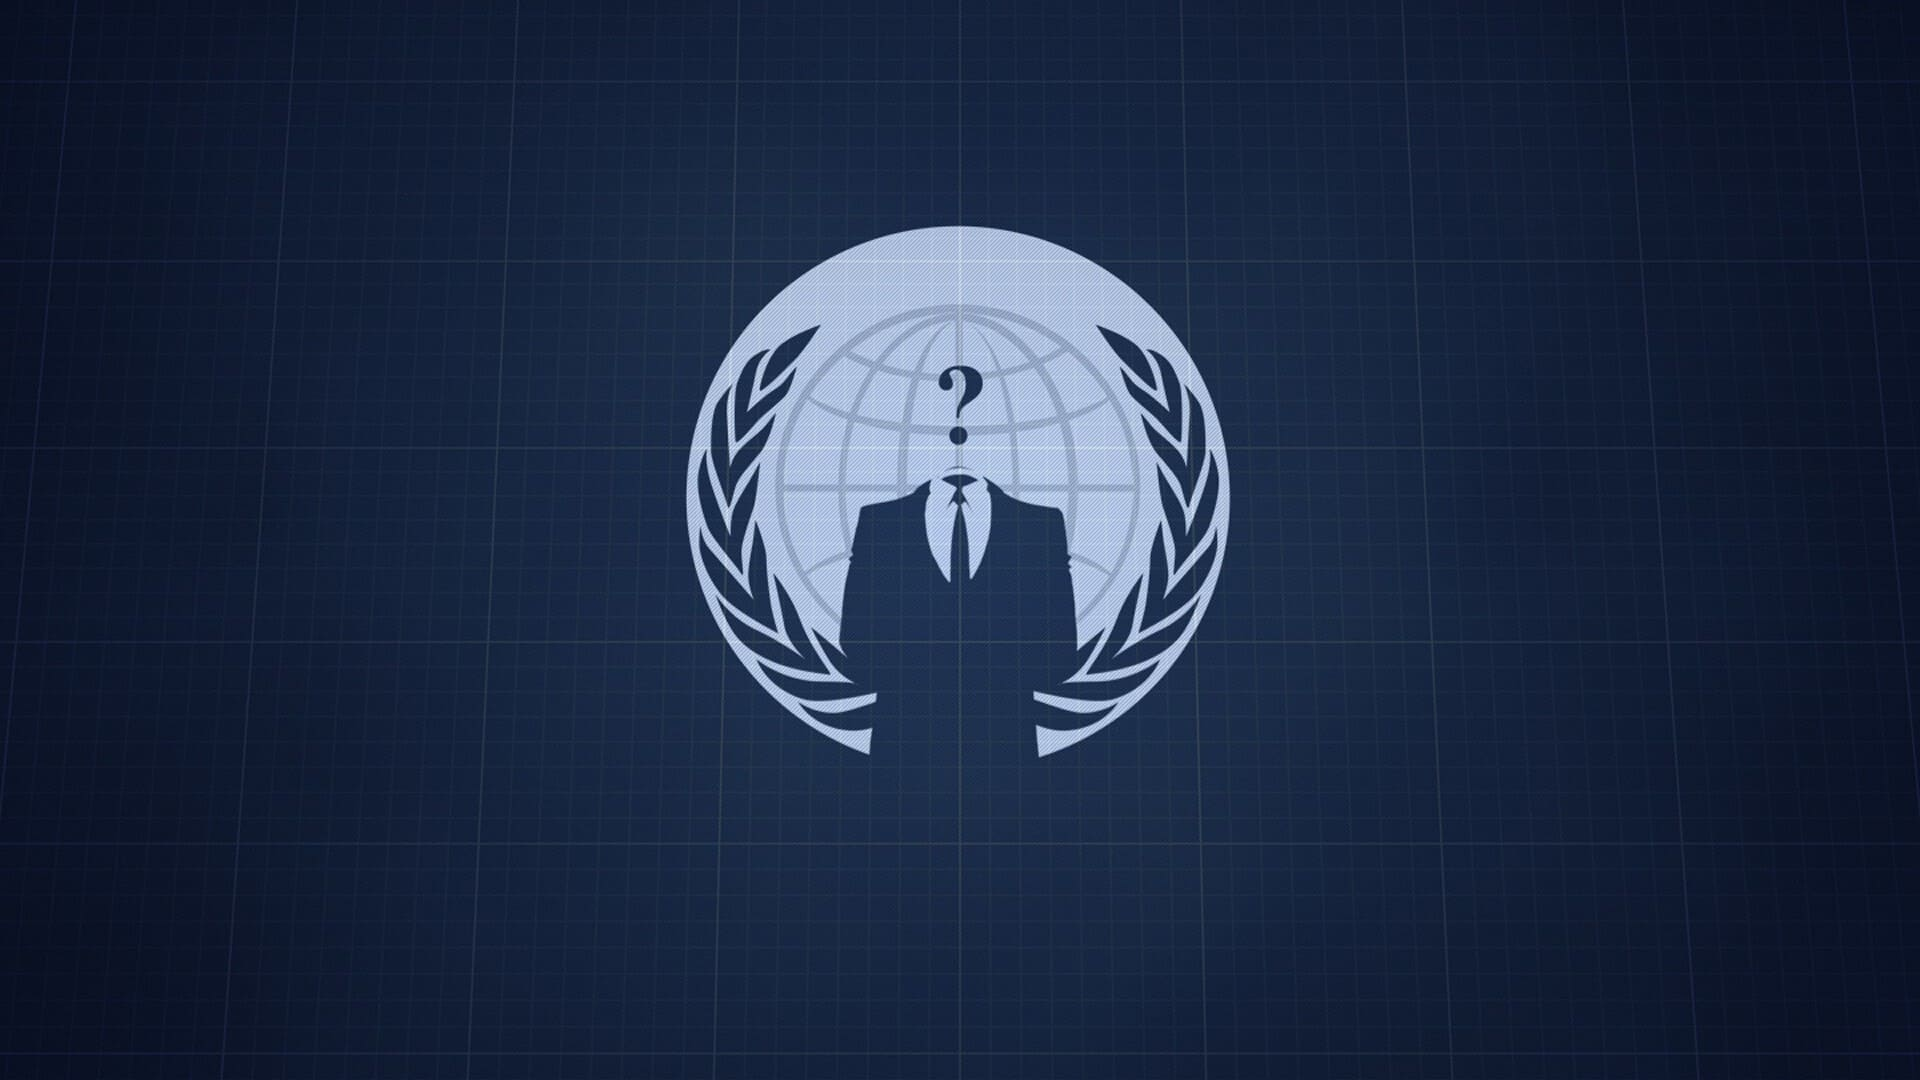 anonymous computer wallpaper hd